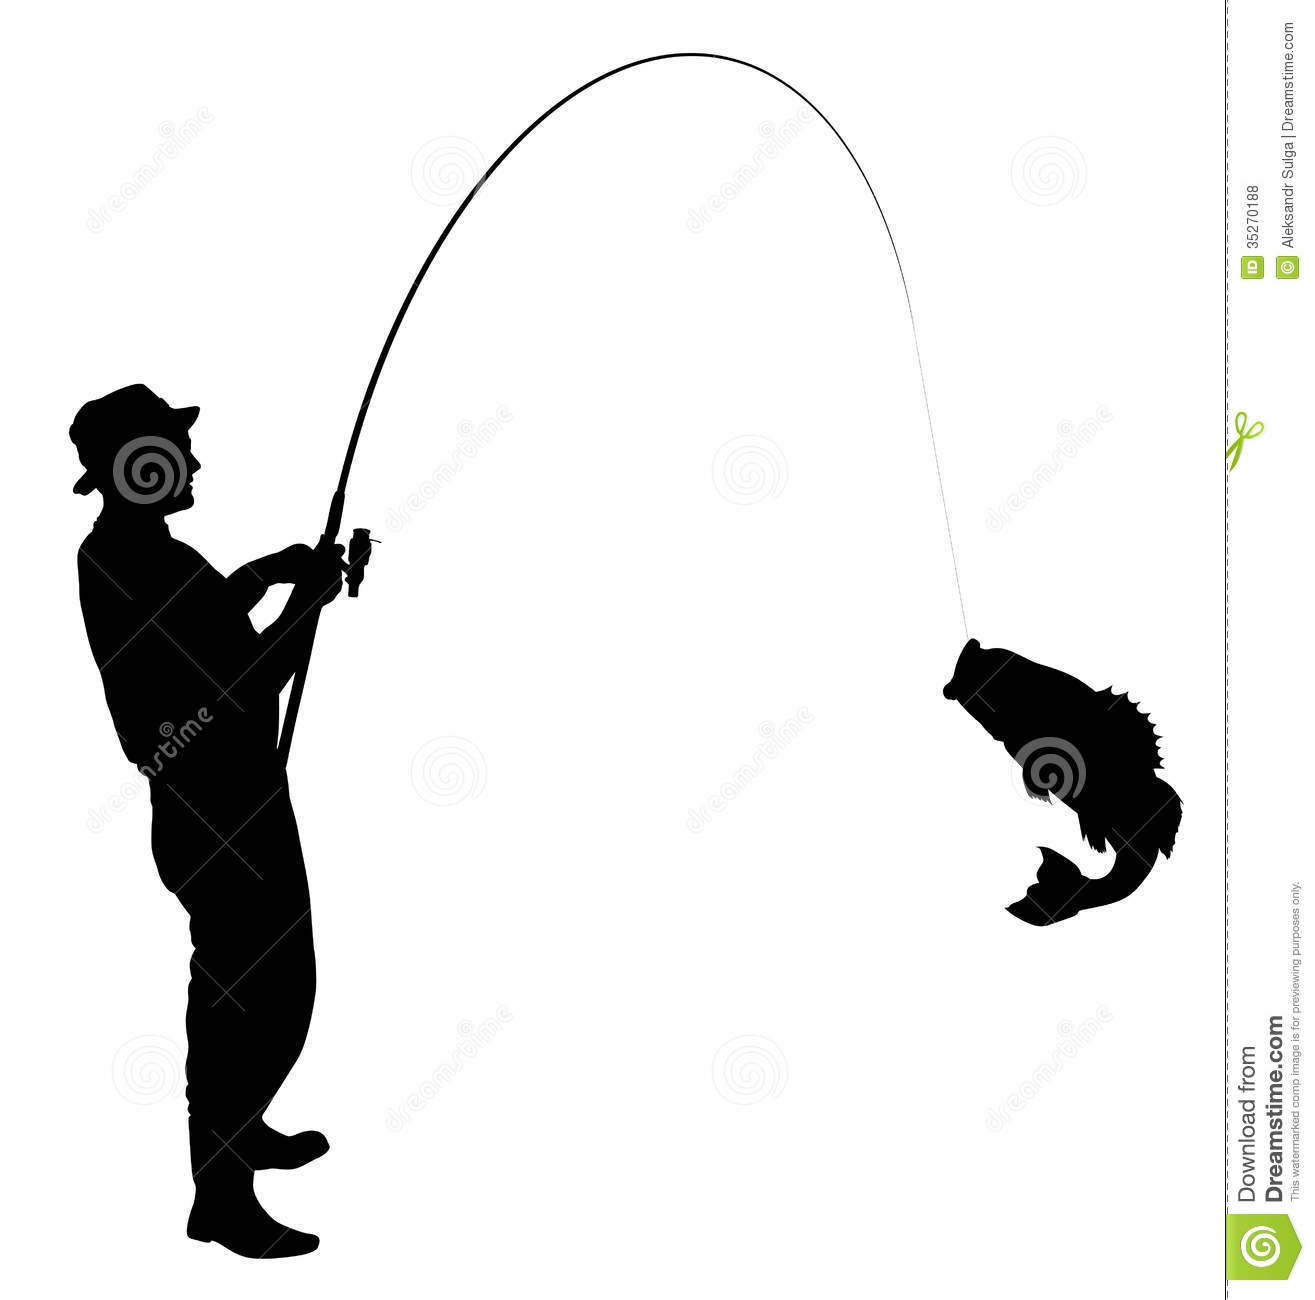 1315x1300 Top Bass Fish Outline Clip Art Fishing Silhouette Fisherman Caught